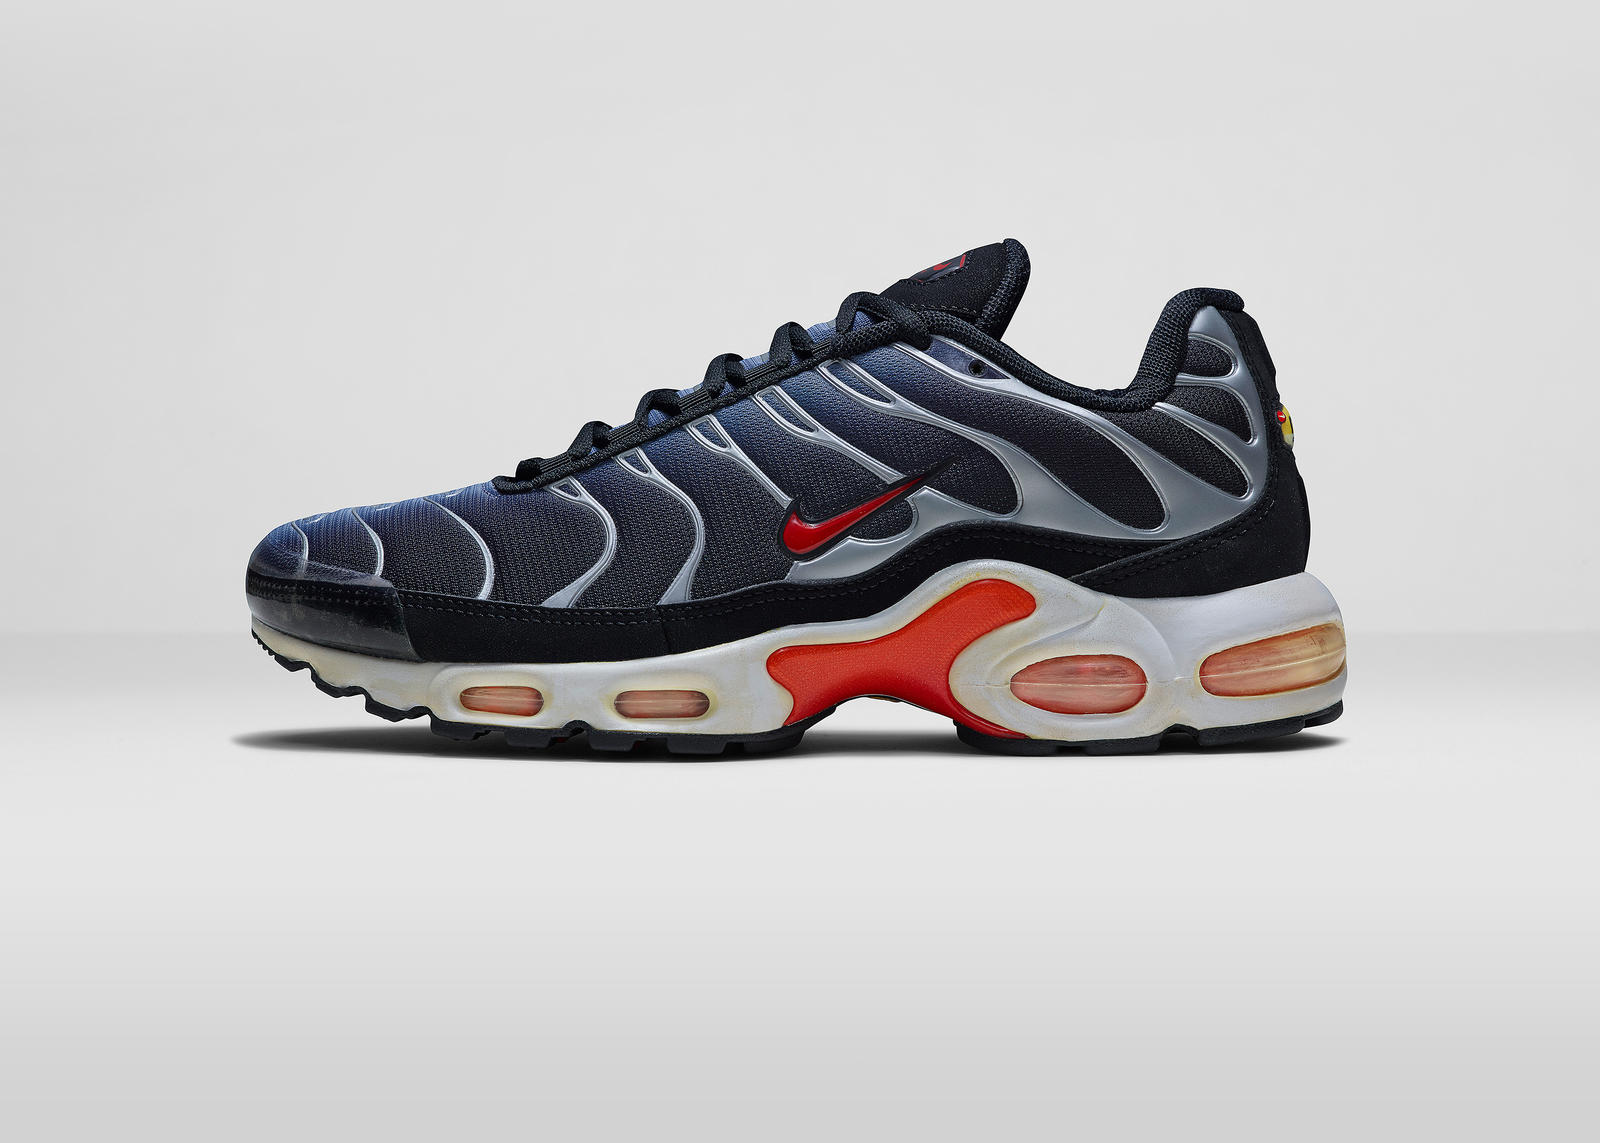 nouveau concept 960ef a48f6 Air Max Archives - Nike News